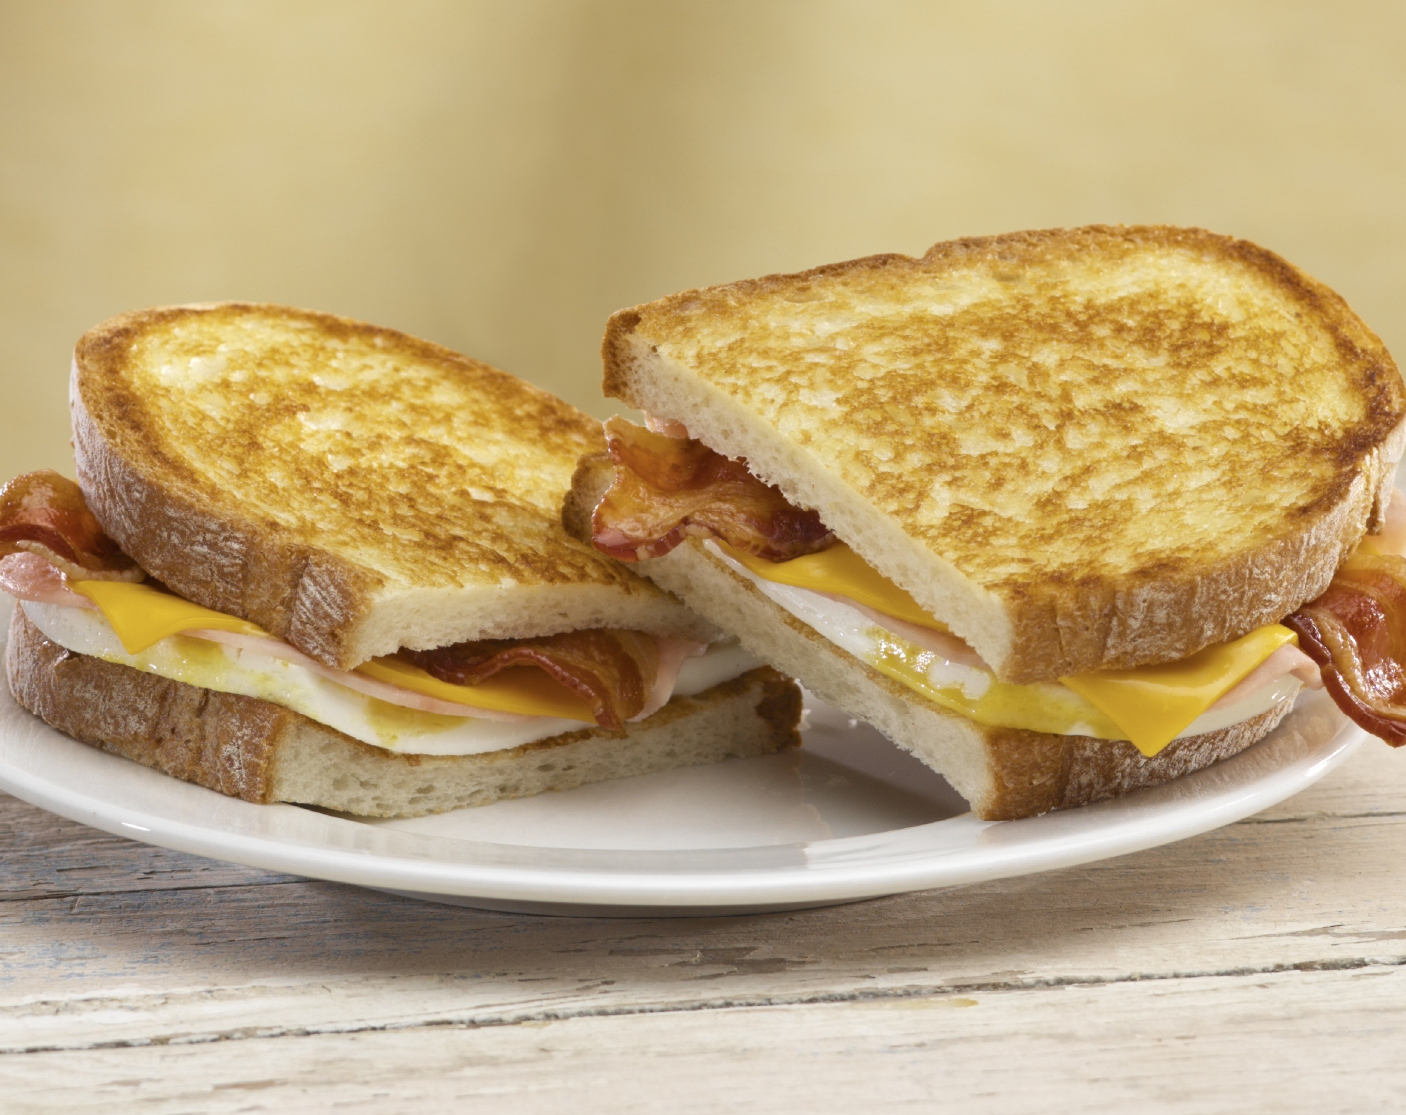 Grilled Breakfast Sandwich from Jack-in-the-box. With two freshly cracked eggs, two slices of ham, two strips of bacon and two slices of melting American cheese all on grilled artisan bread.